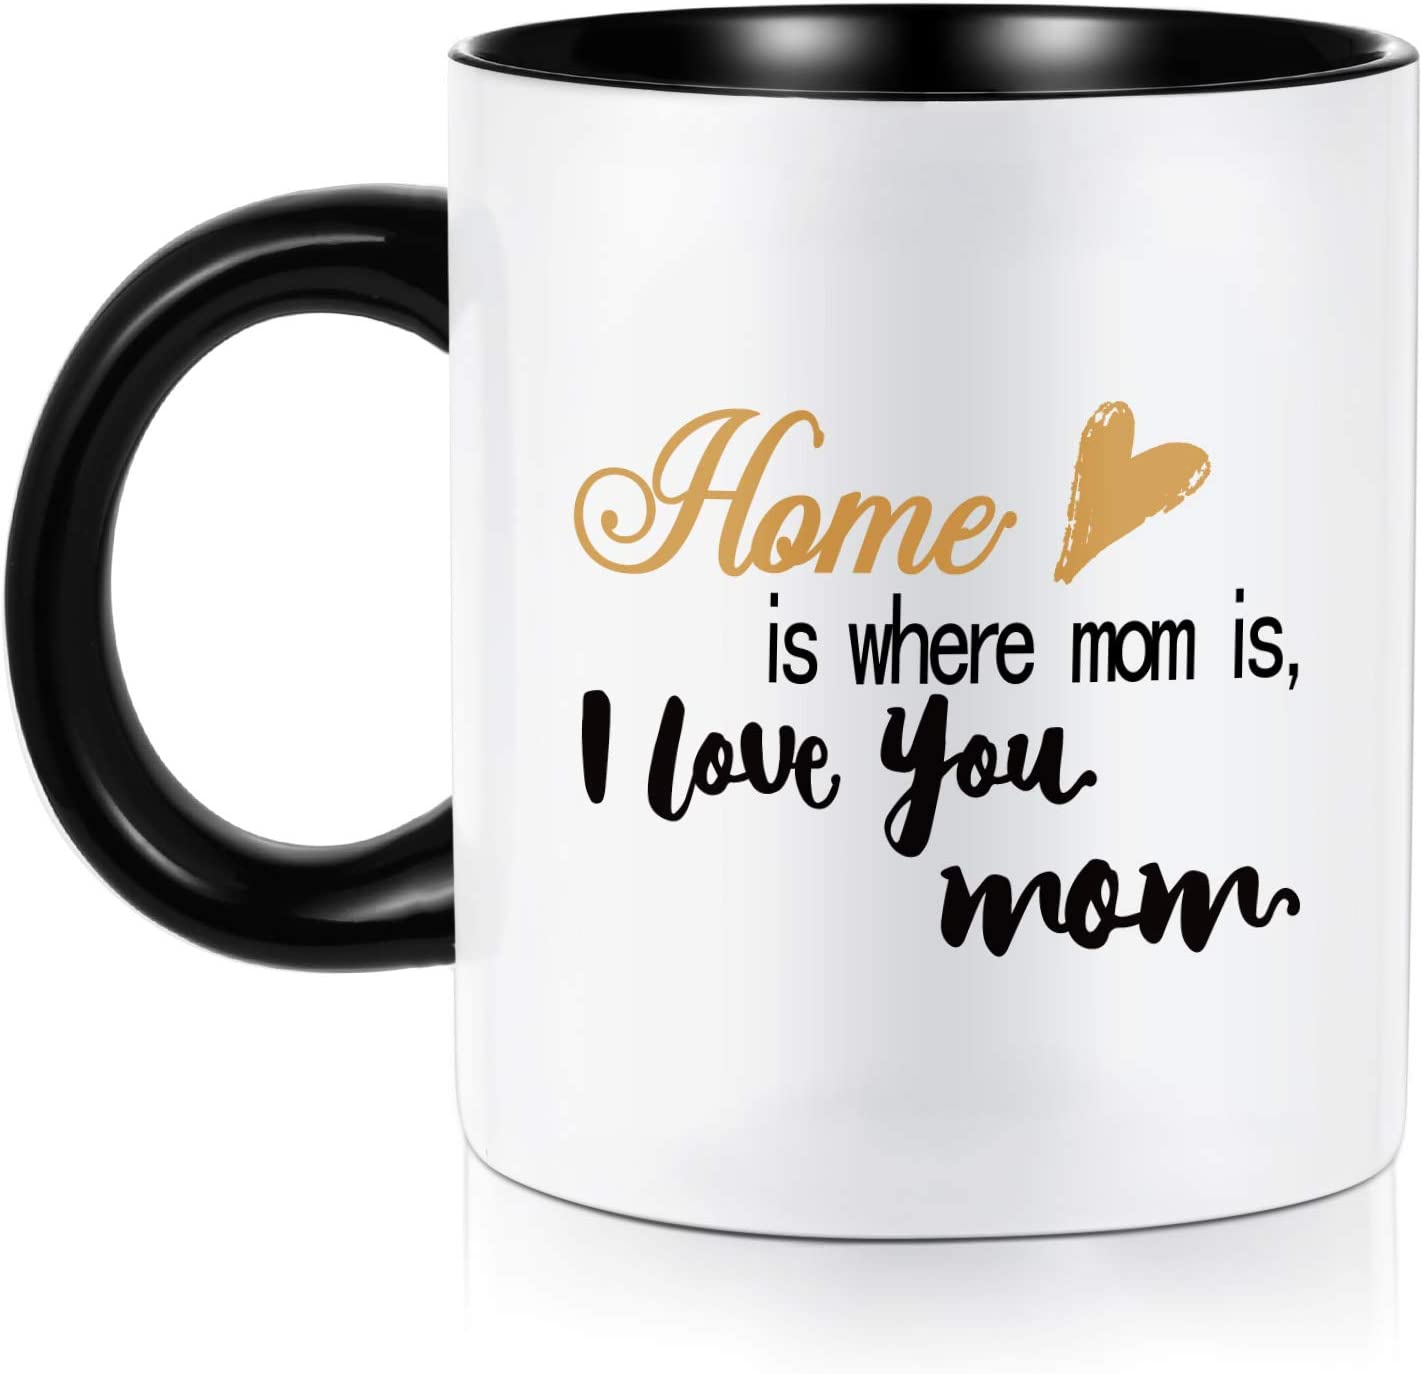 Mom Gifts, Home is Where Mom is I Love You mom Gifts for Mom Birthday Christmas Mothers Day Valentines, White Ceramic 11 oz Mugs Coffee Tea Cup